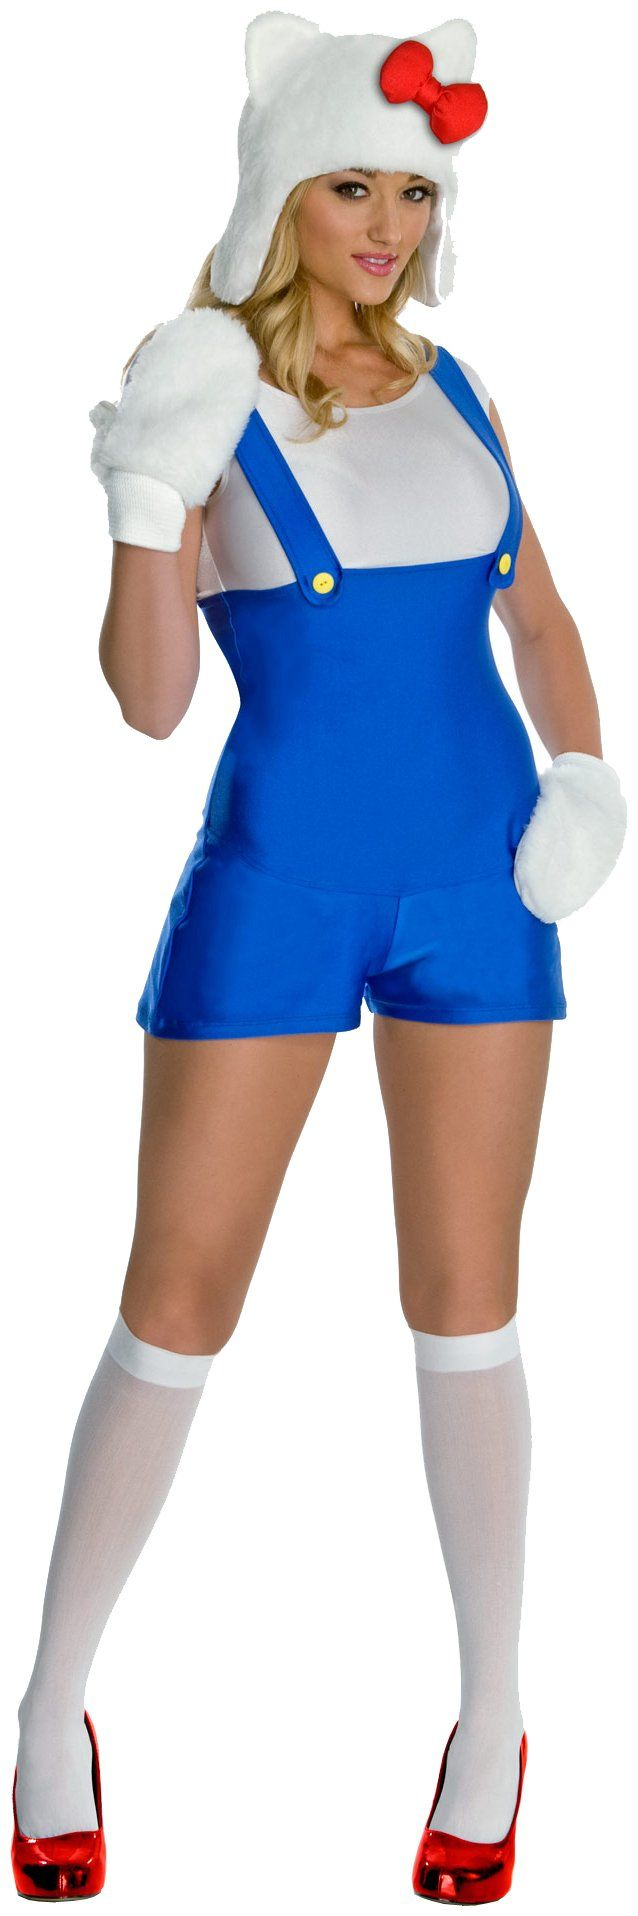 Cozy hello kitty cat animal sanrio fancy dress up halloween sexy adult costume for sale online